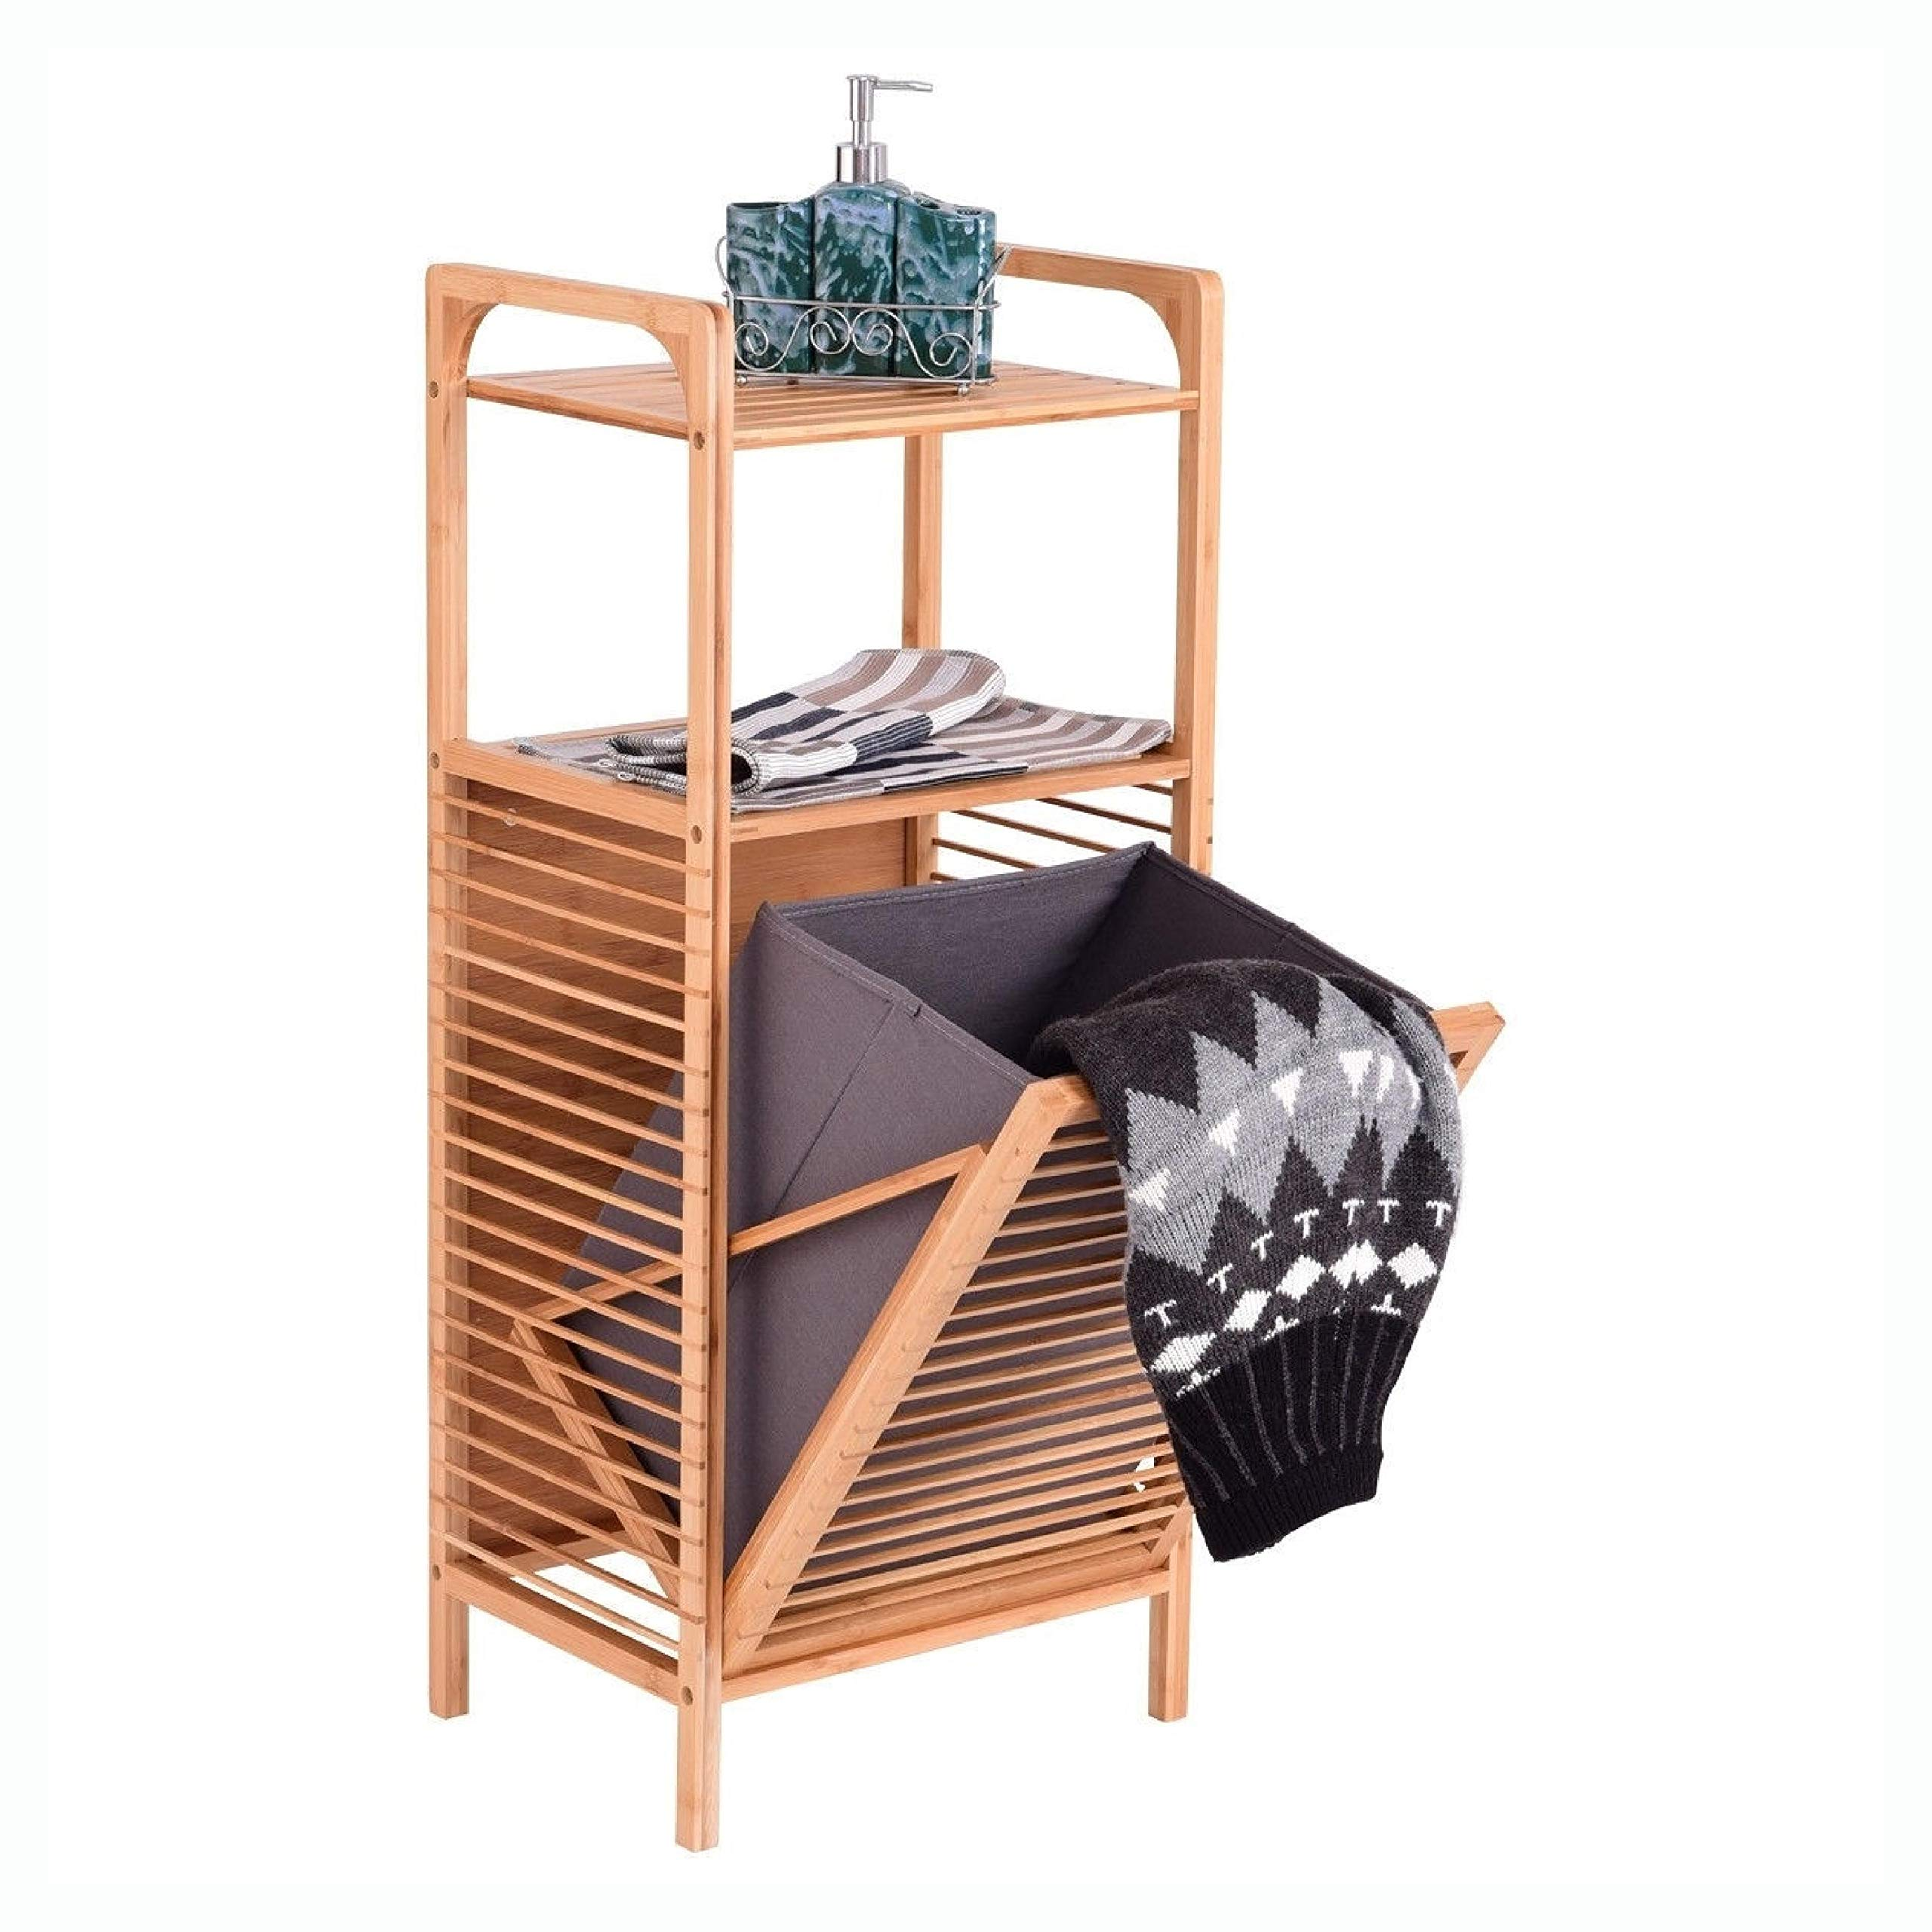 Laundry Hamper, Bamboo 2-in-1 Laundry Hamper Side Table with 2 Shelves and Clothes Basket